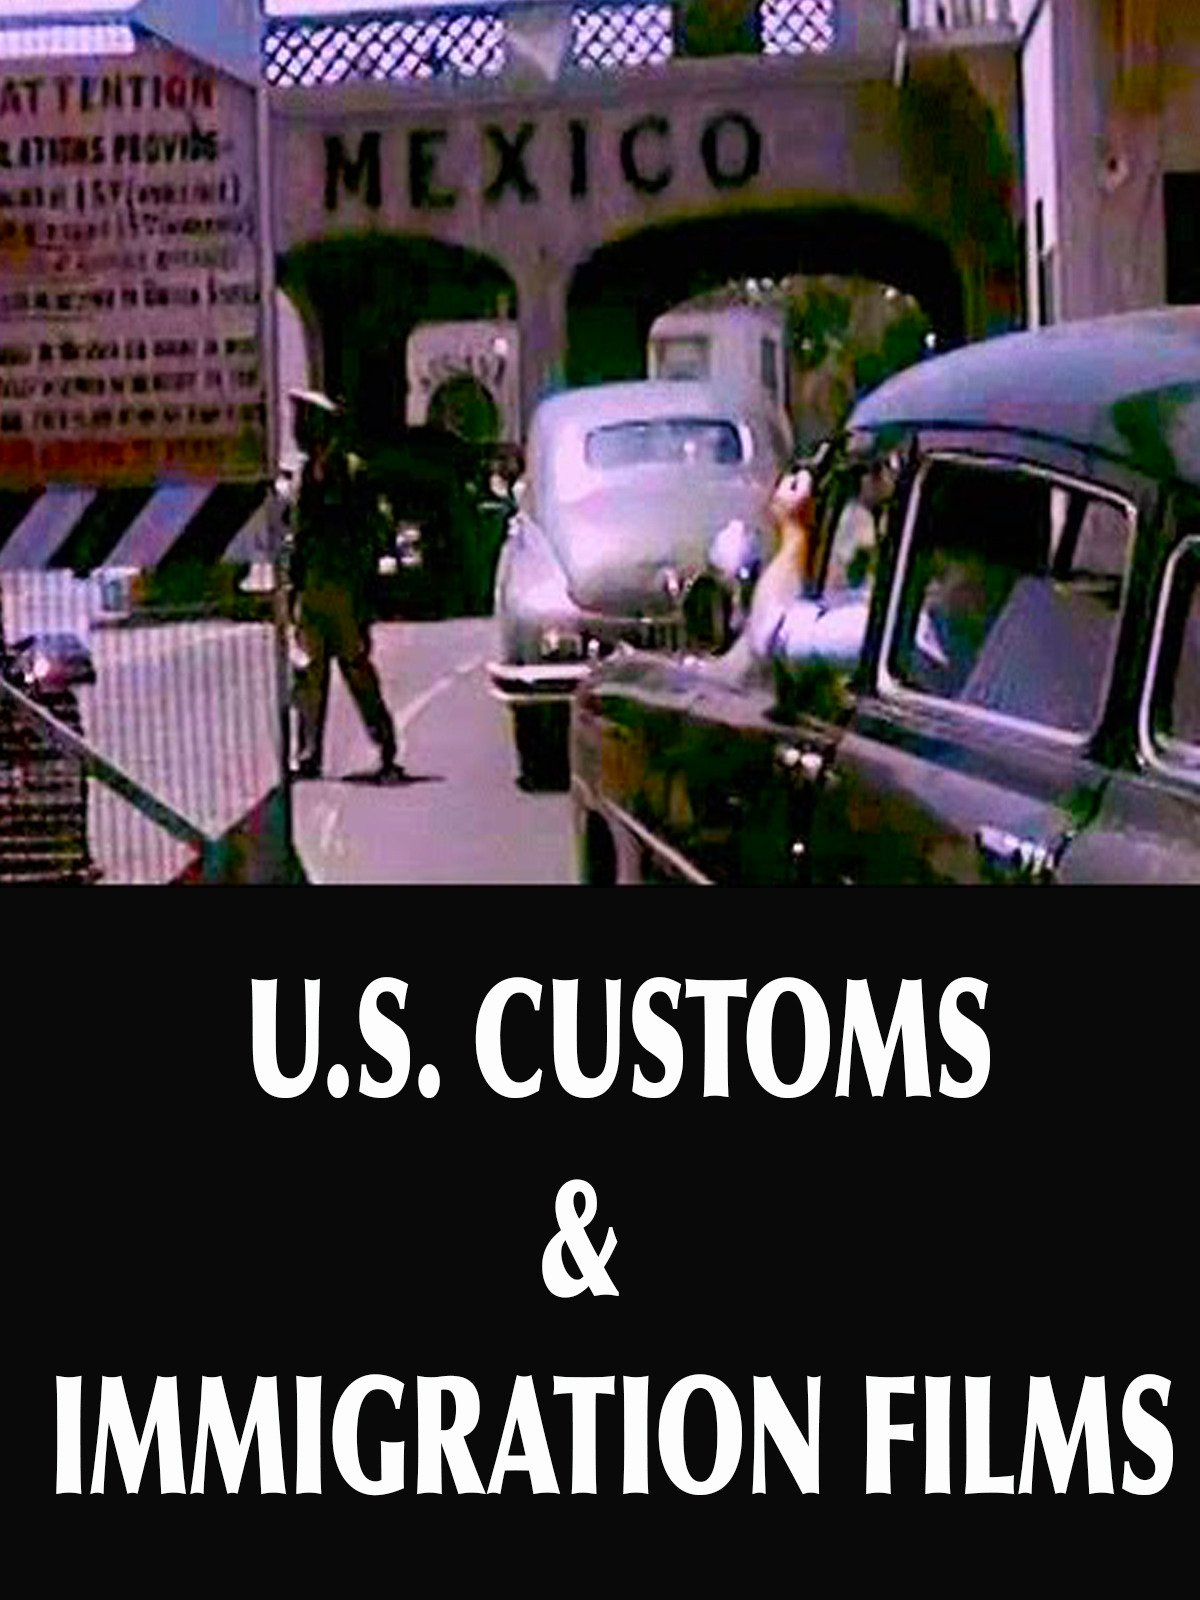 U.S. Customs & Immigration Films